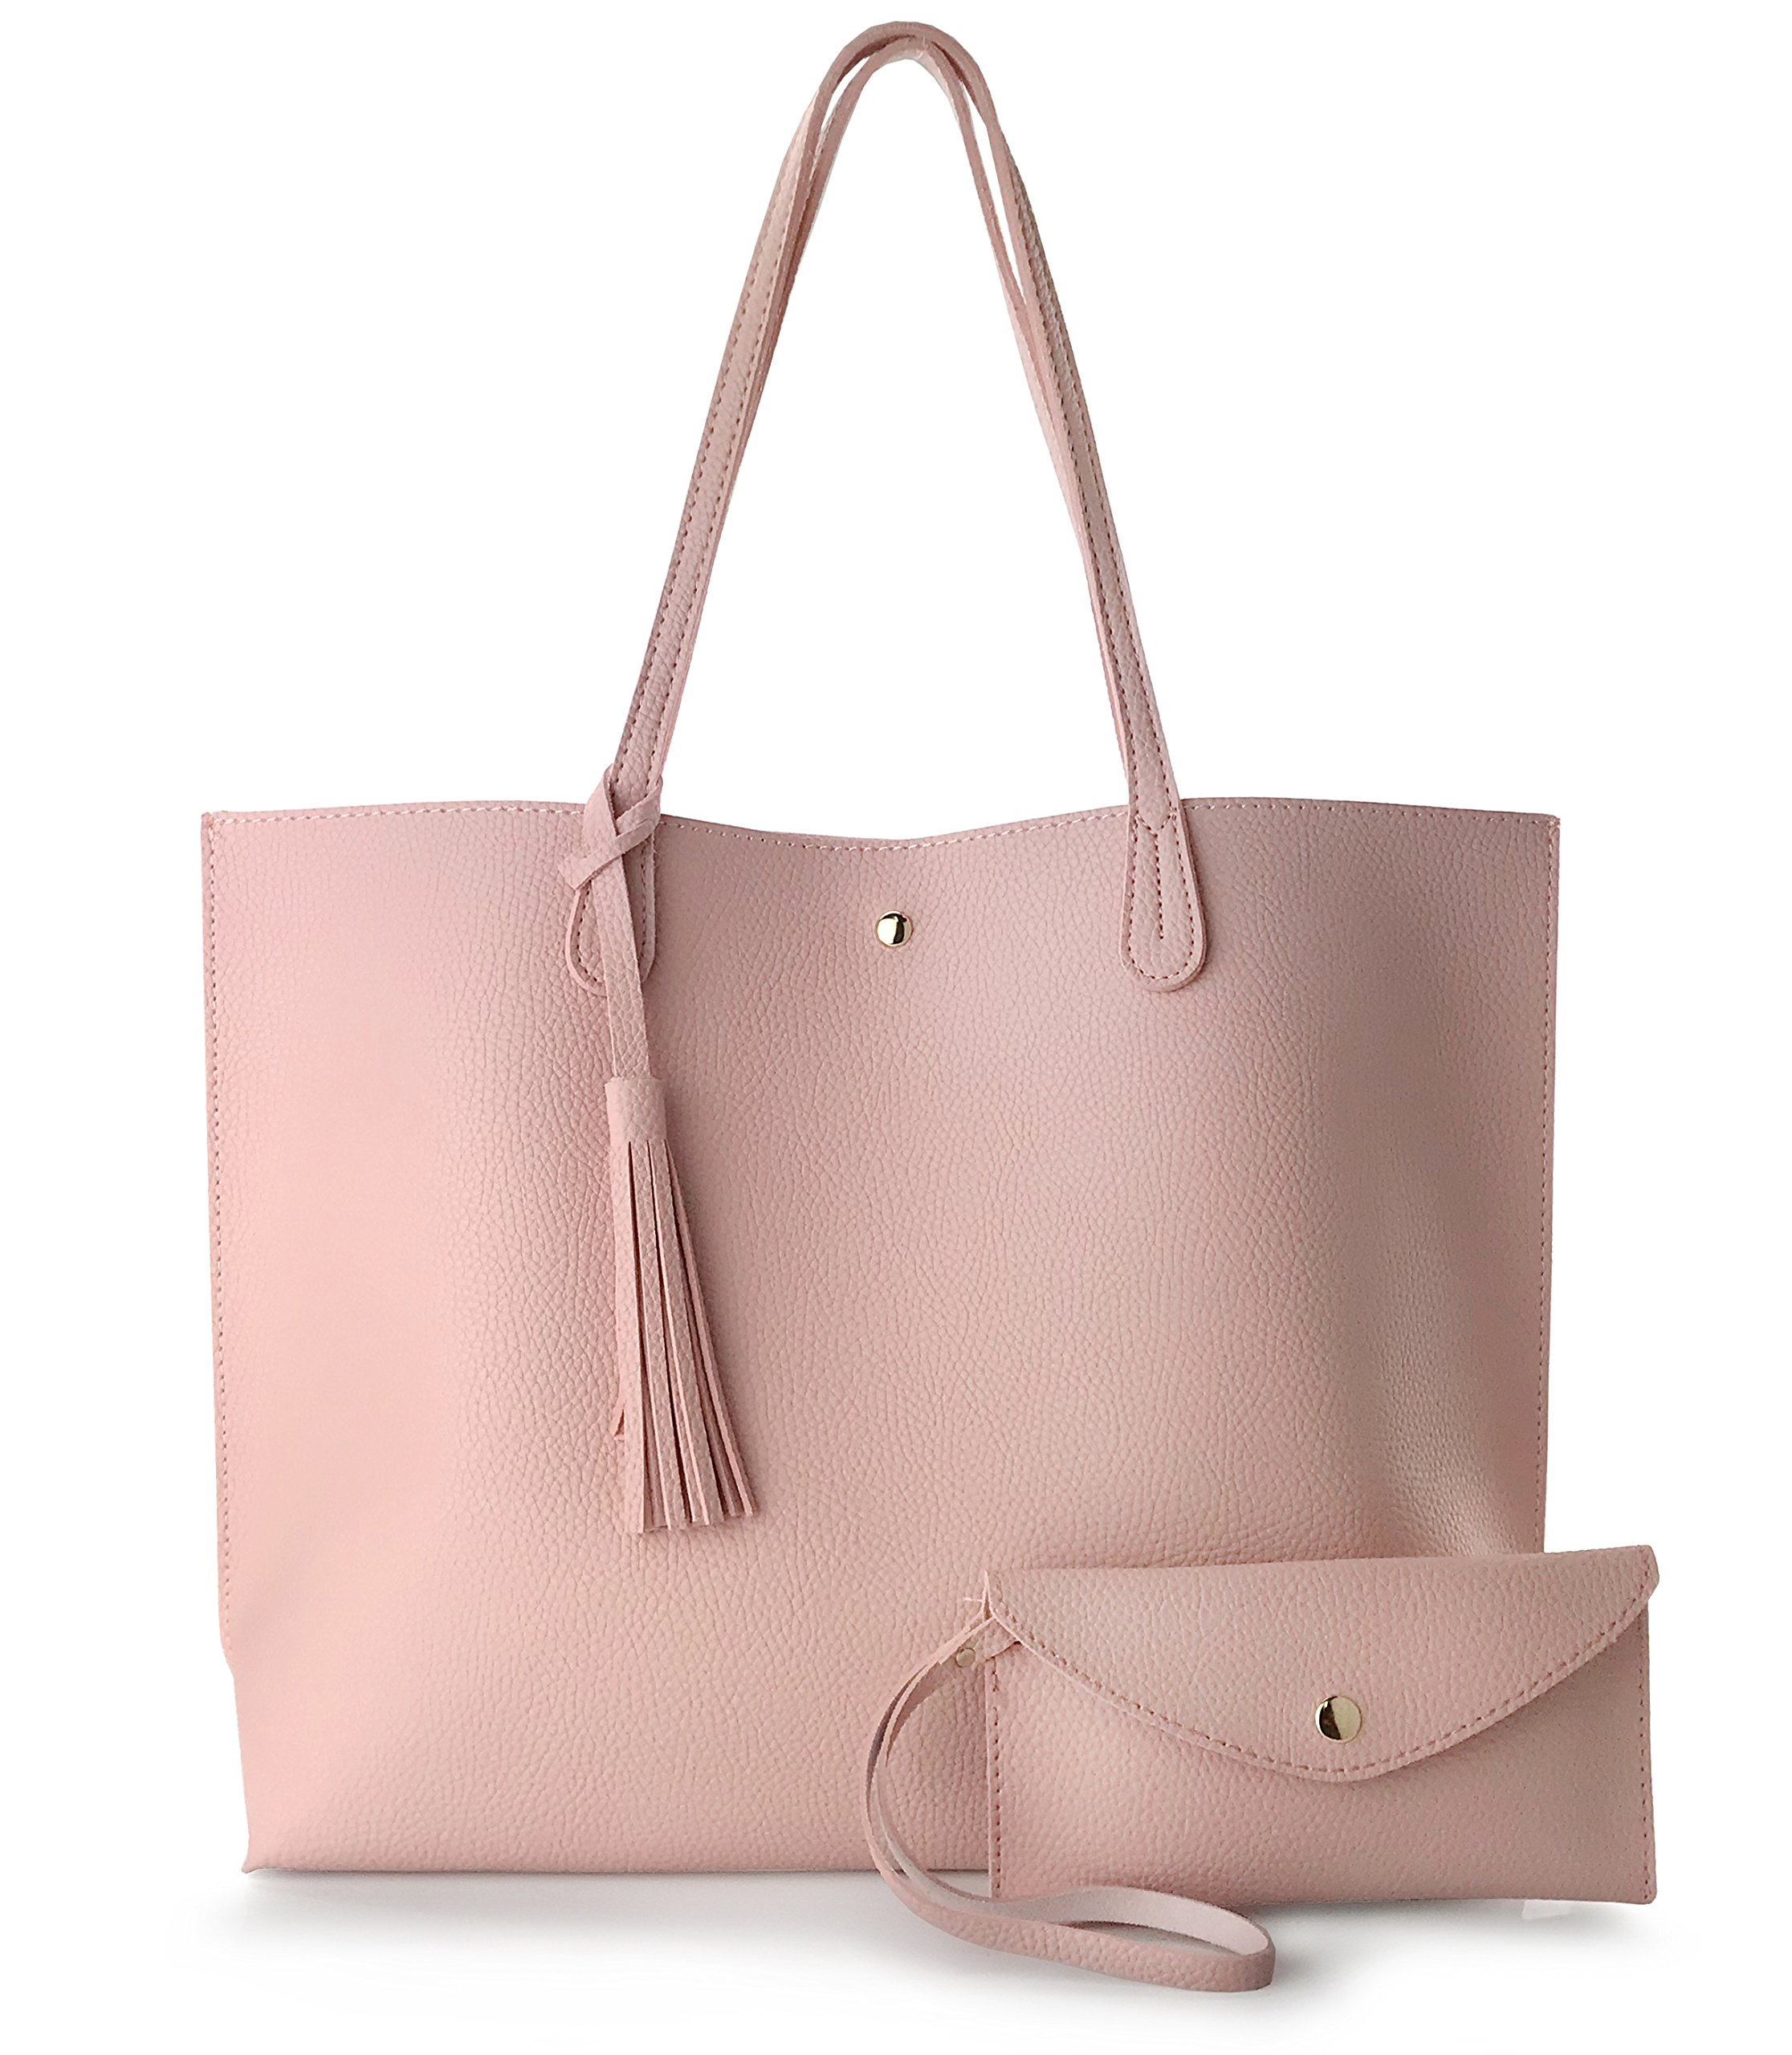 Minimalist Clean Cut Pebbled Faux Leather Tote Womens Shoulder Handbag (Pink)